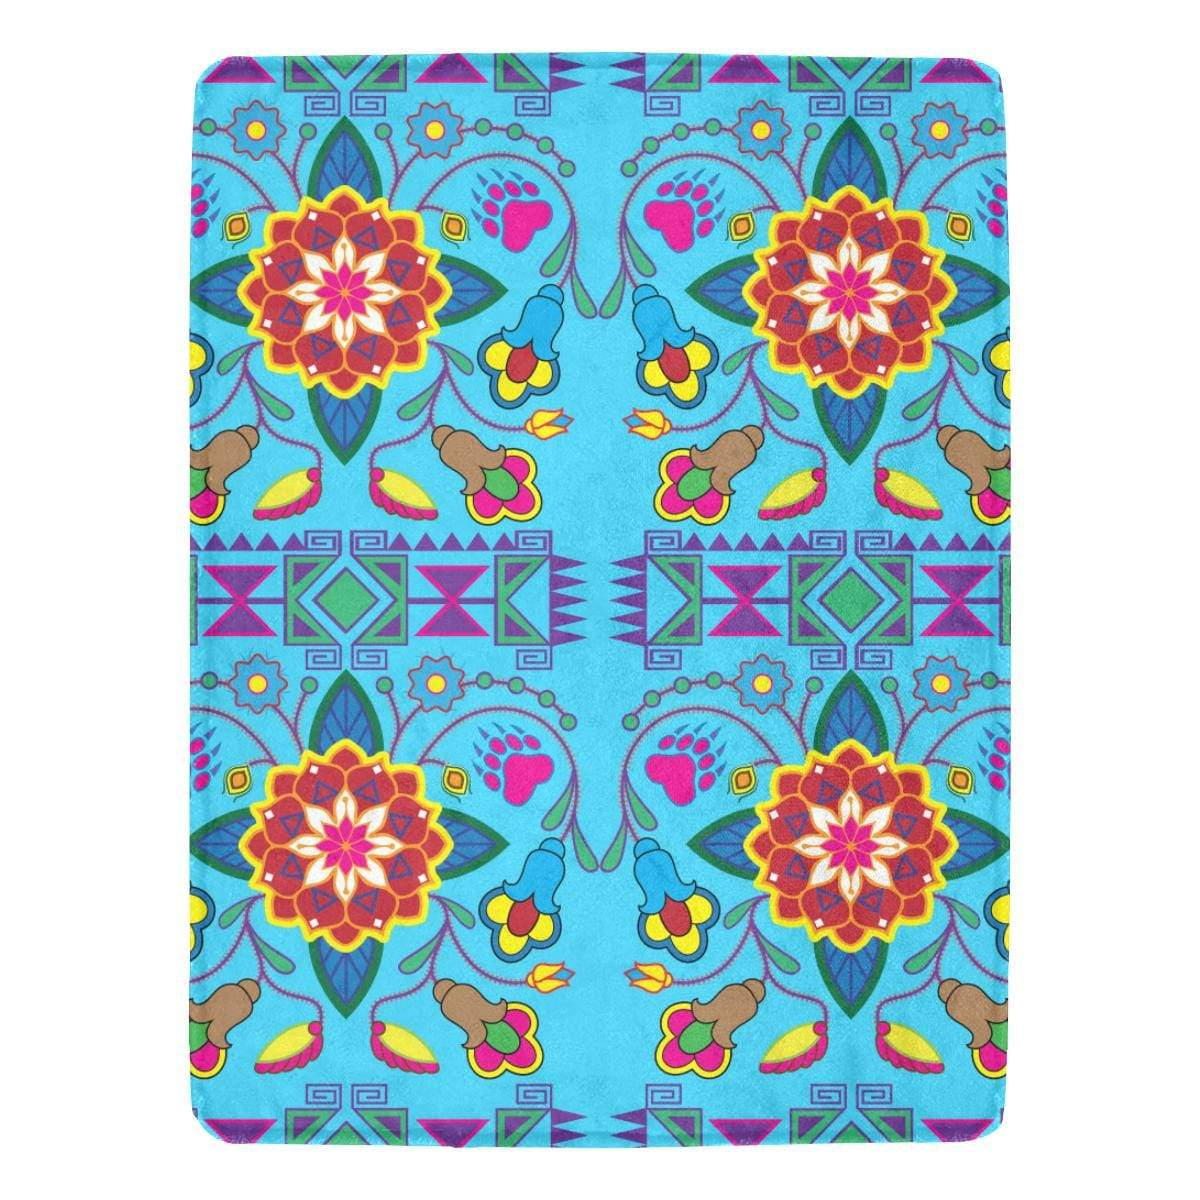 Geometric Floral Winter - Sky Blue Ultra-Soft Micro Fleece Blanket 60